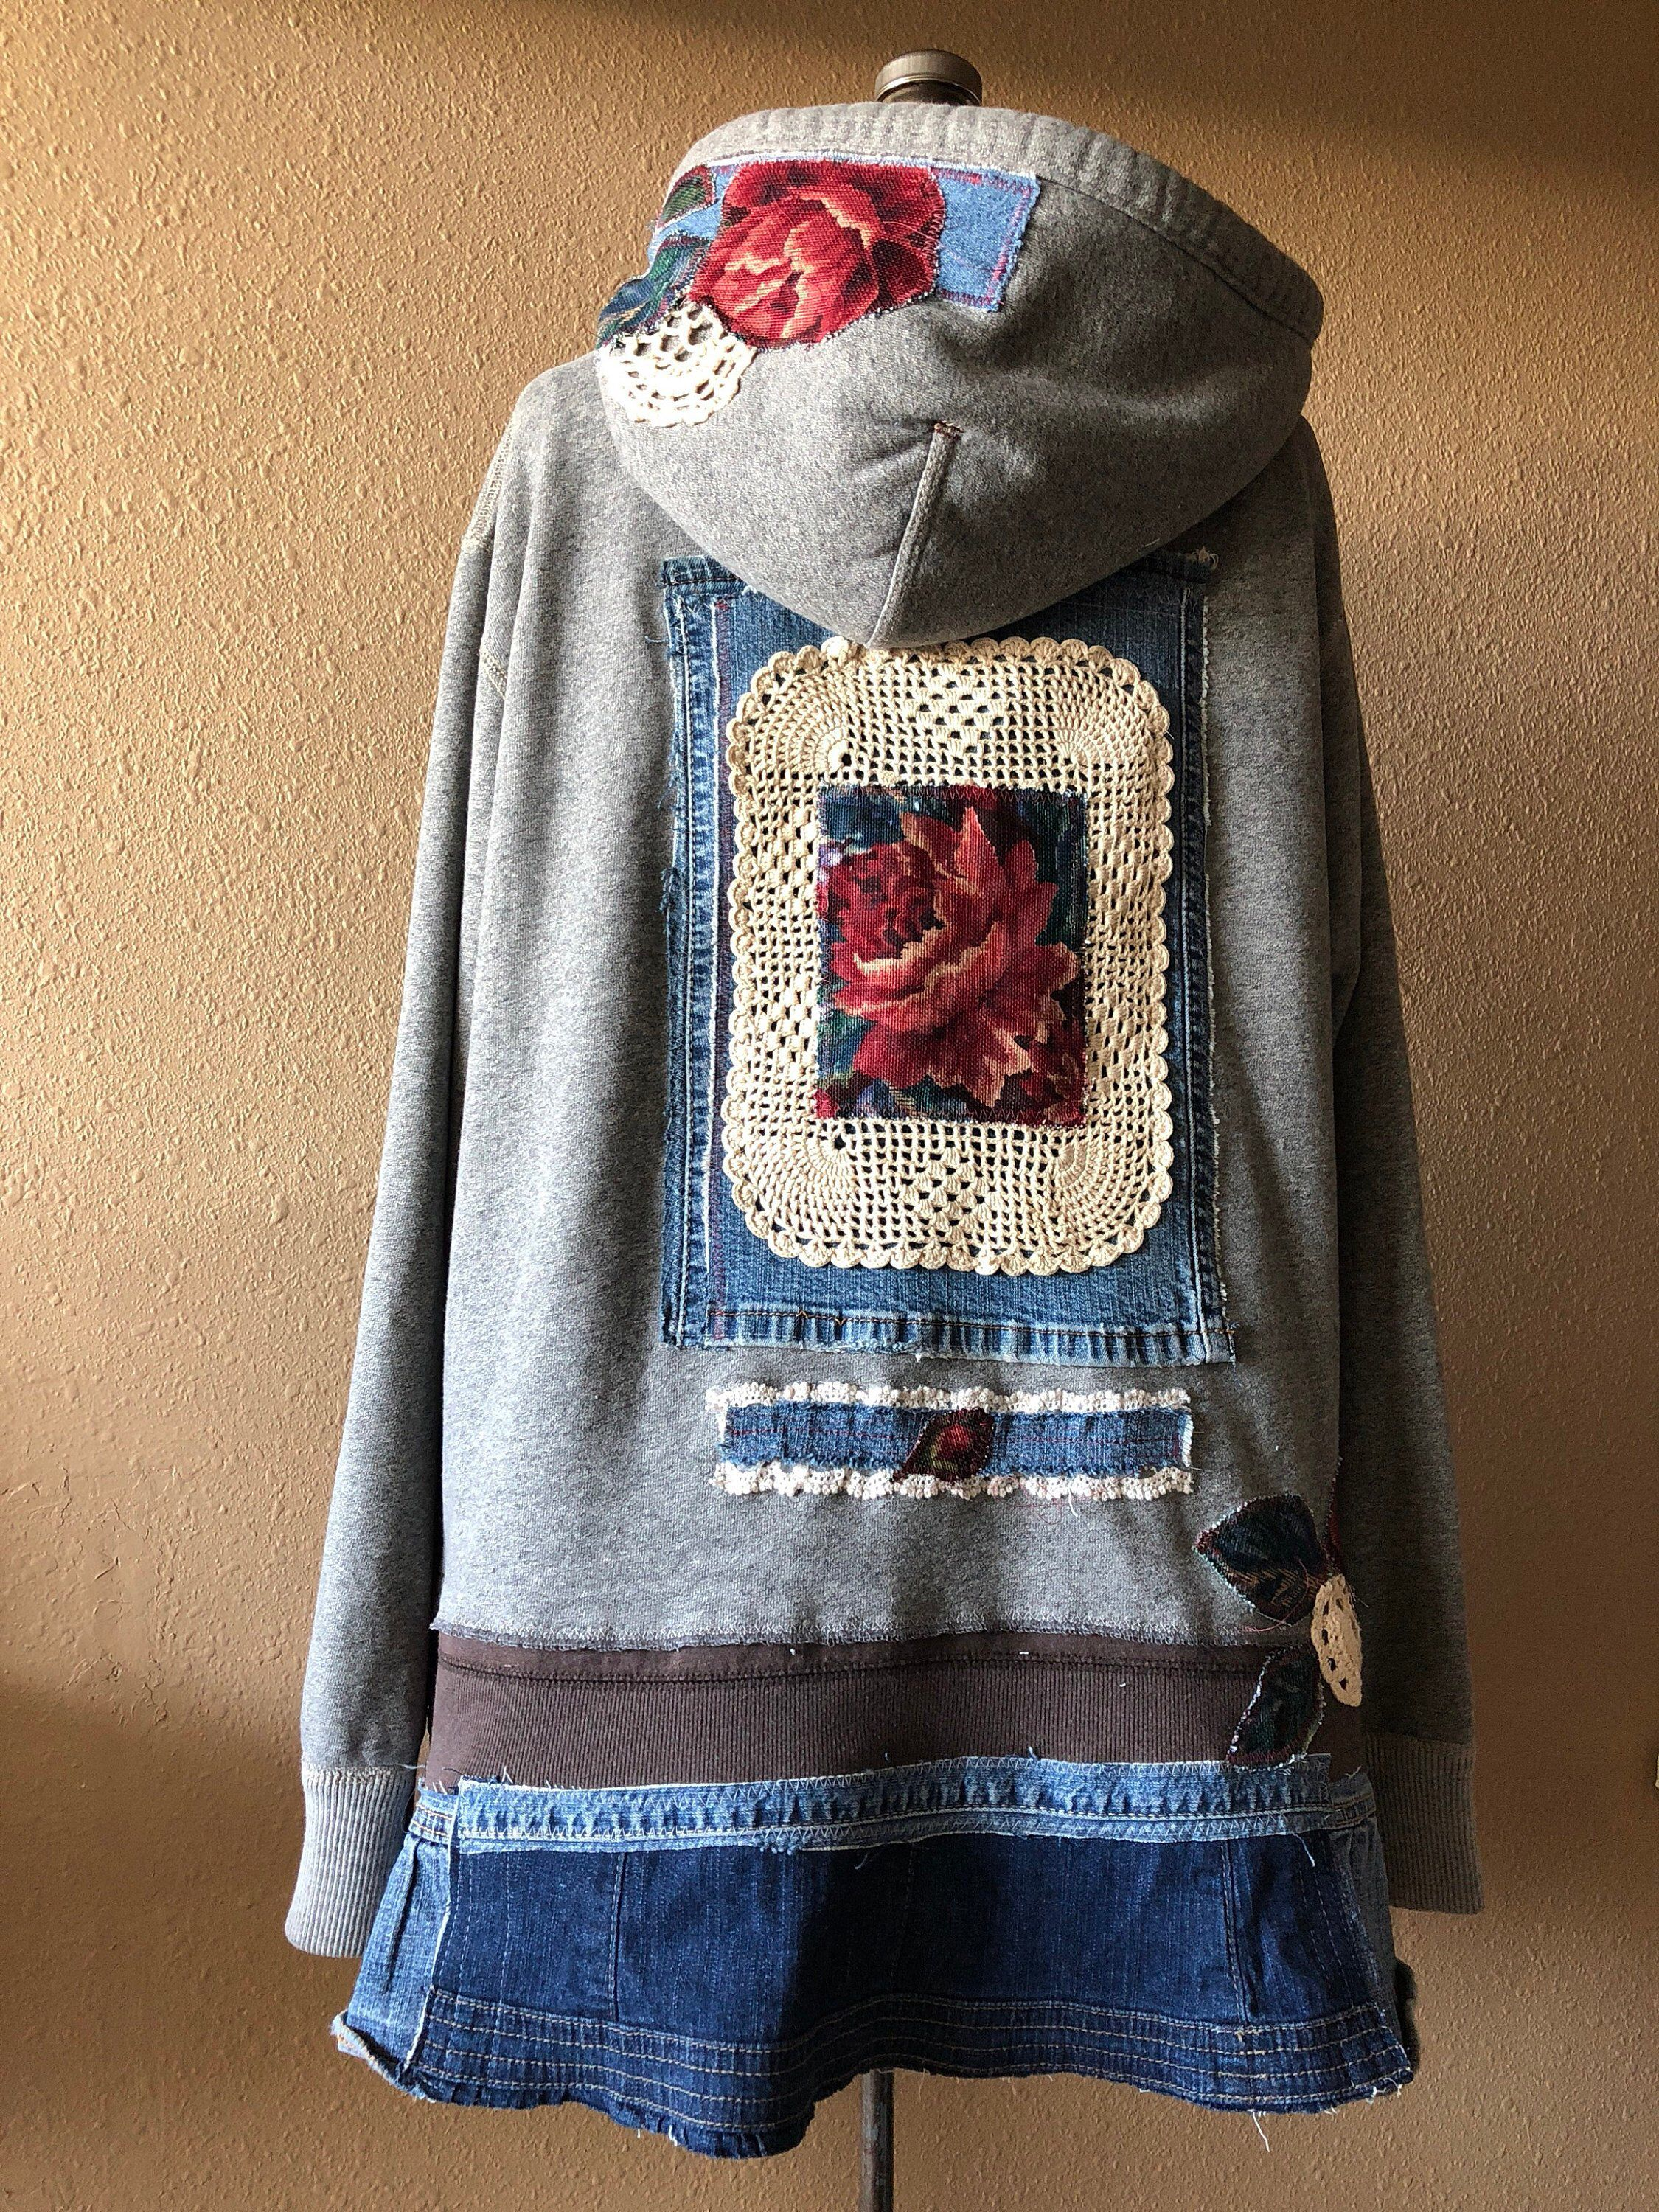 889651e7c47 Excited to share this item from my  etsy shop  Upcycled Boho Gypsy Rose  Tapestry Hoodie Jacket